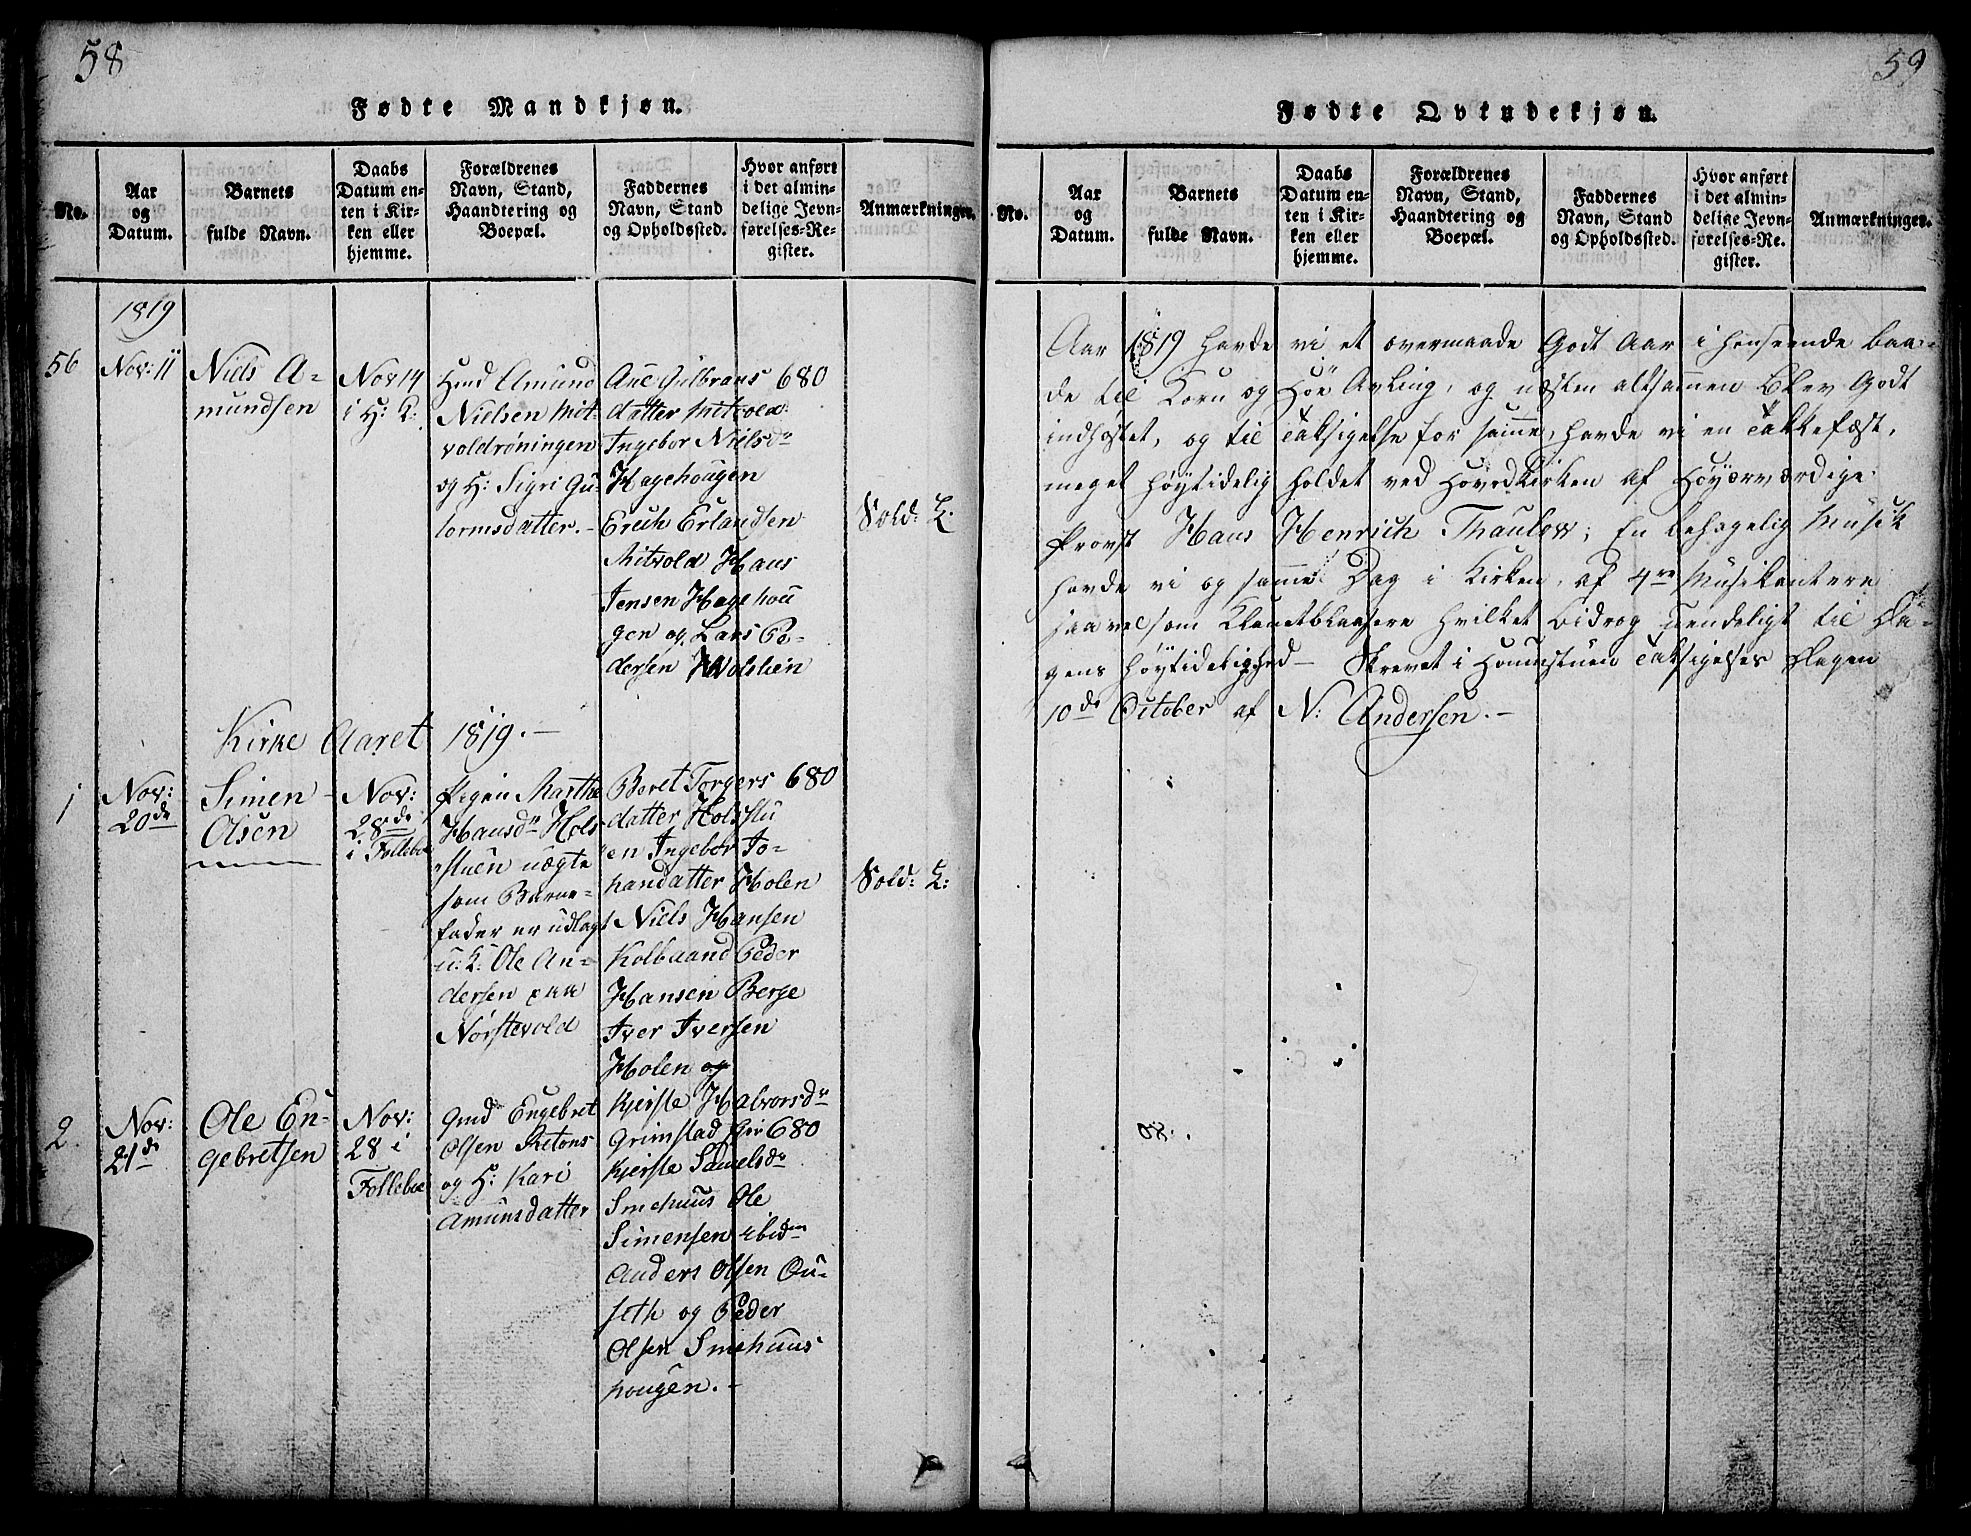 SAH, Gausdal prestekontor, Parish register (copy) no. 1, 1817-1848, p. 58-59